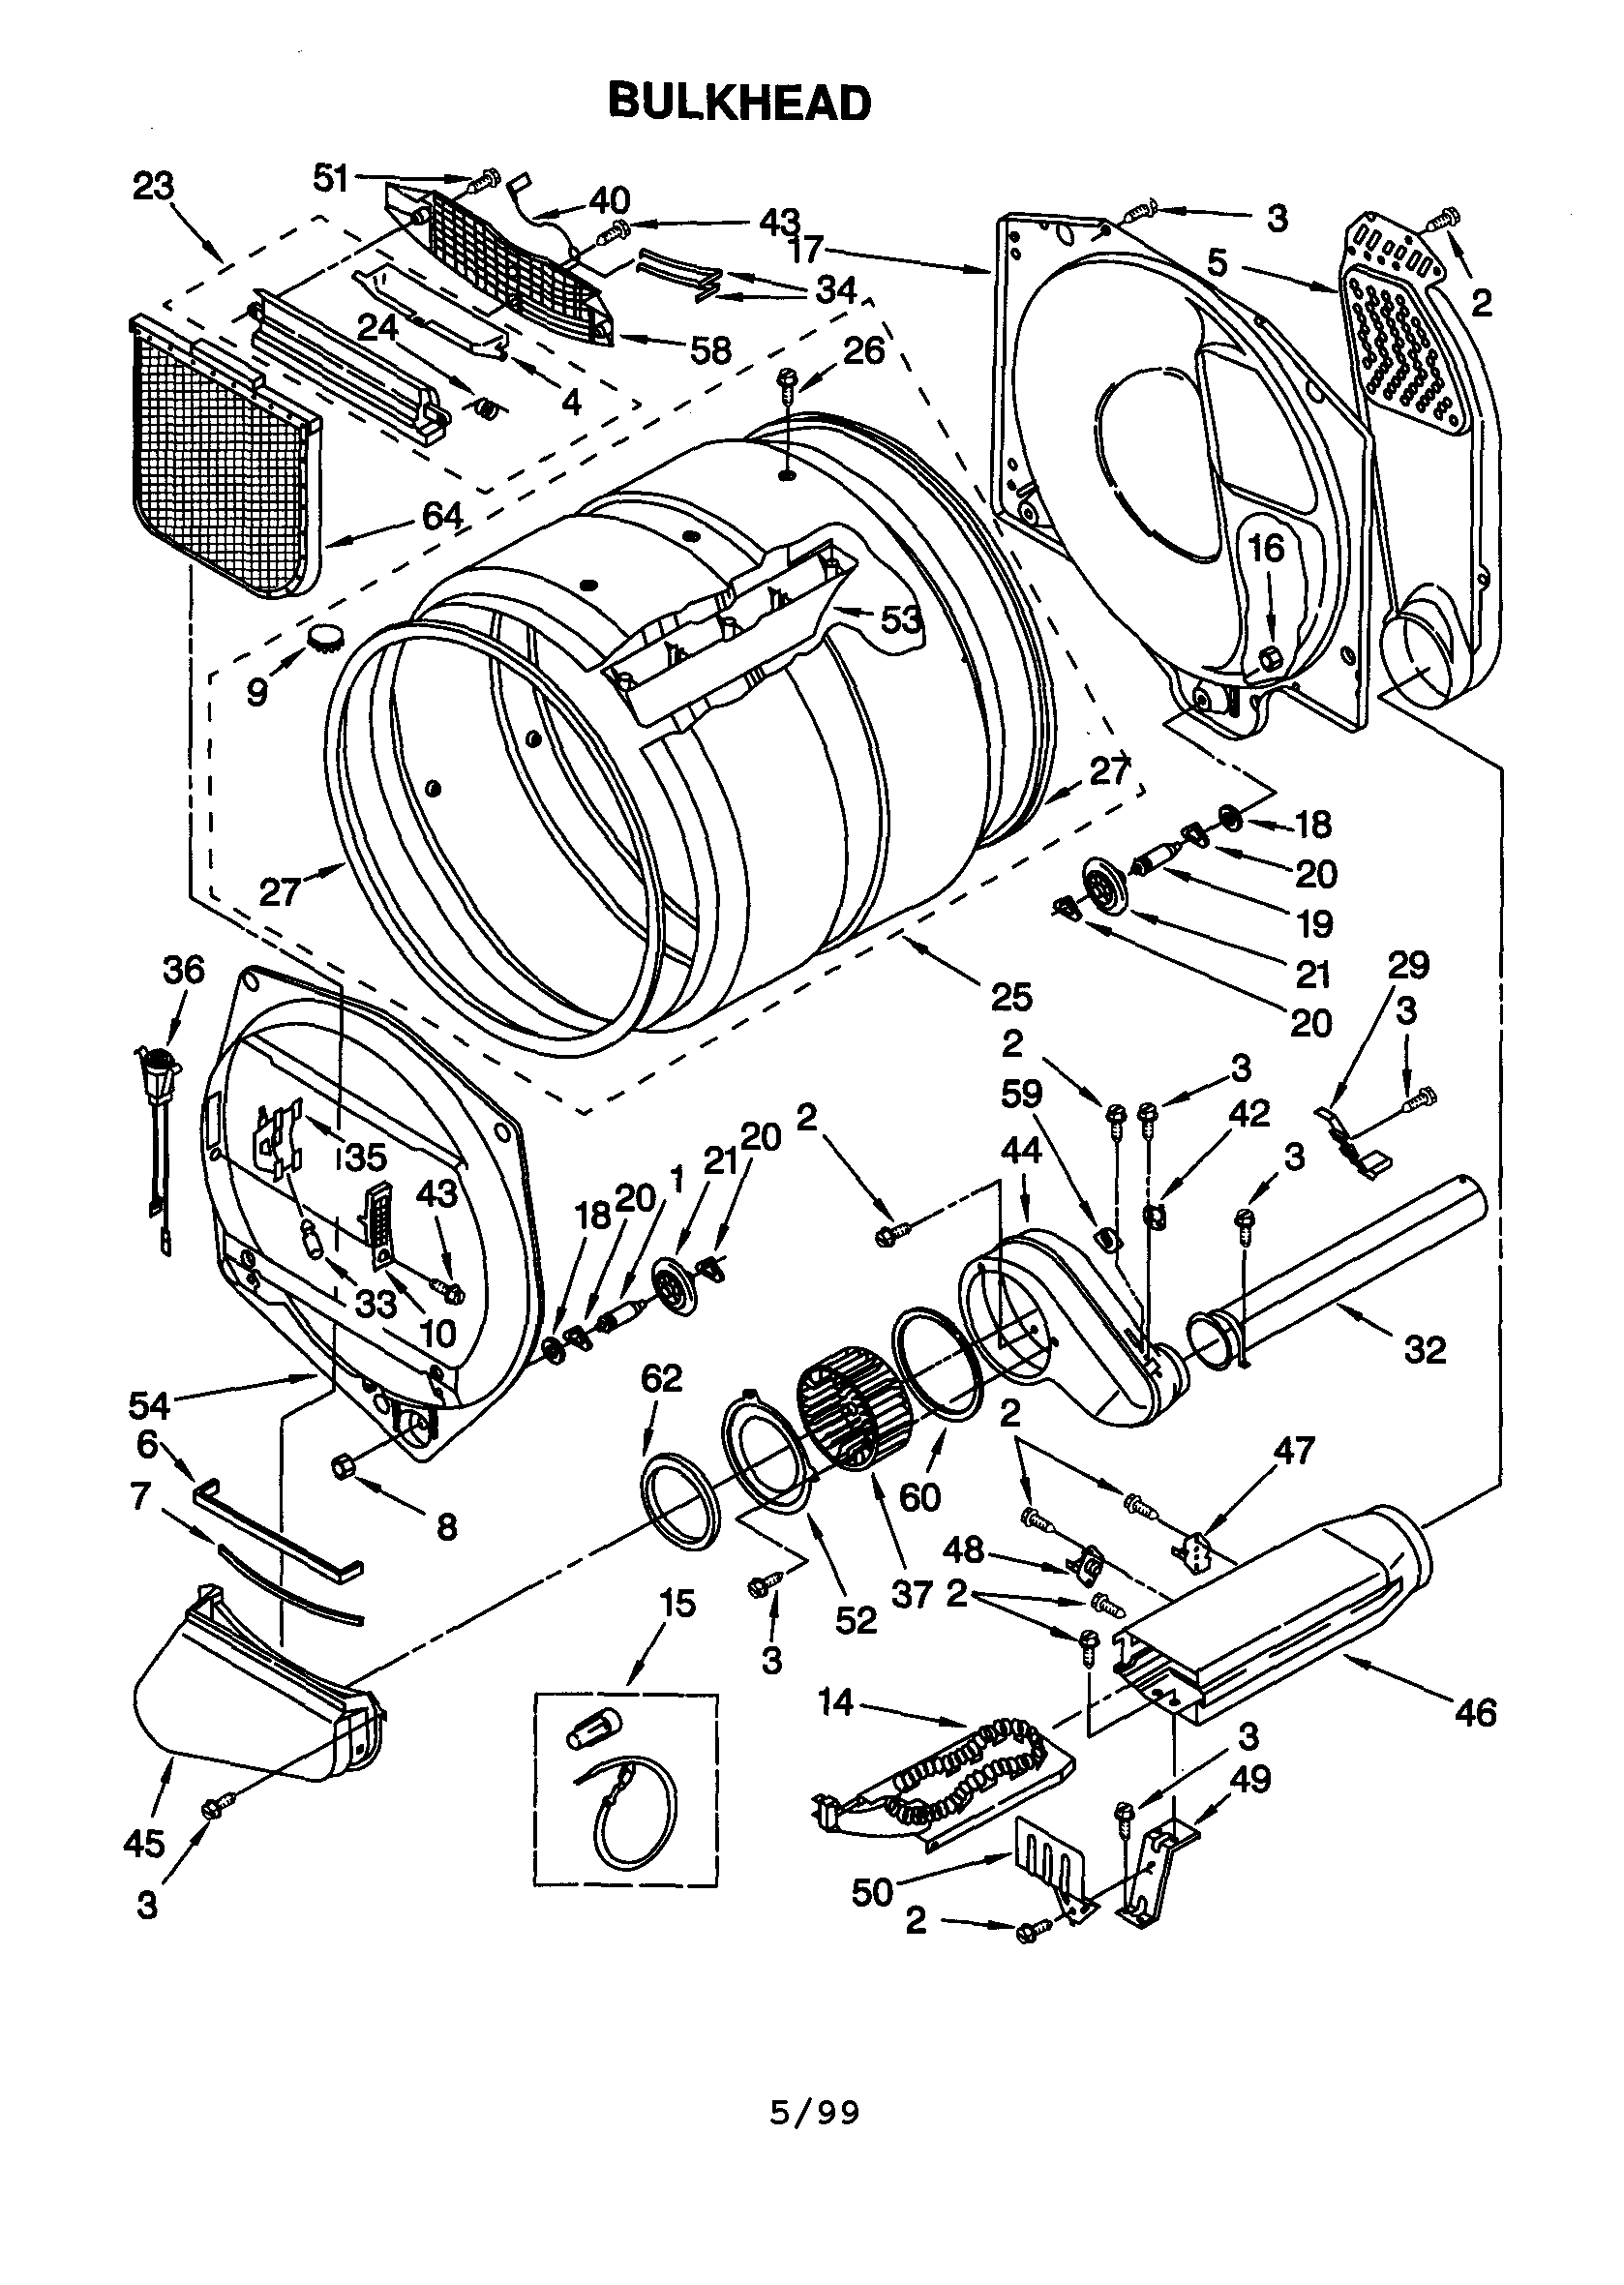 kenmore dryer diagram maytag dryer belt replacement diagram kenmore diagram further kenmore dryer fuse location moreover whirlpool dryer [ 1678 x 2361 Pixel ]